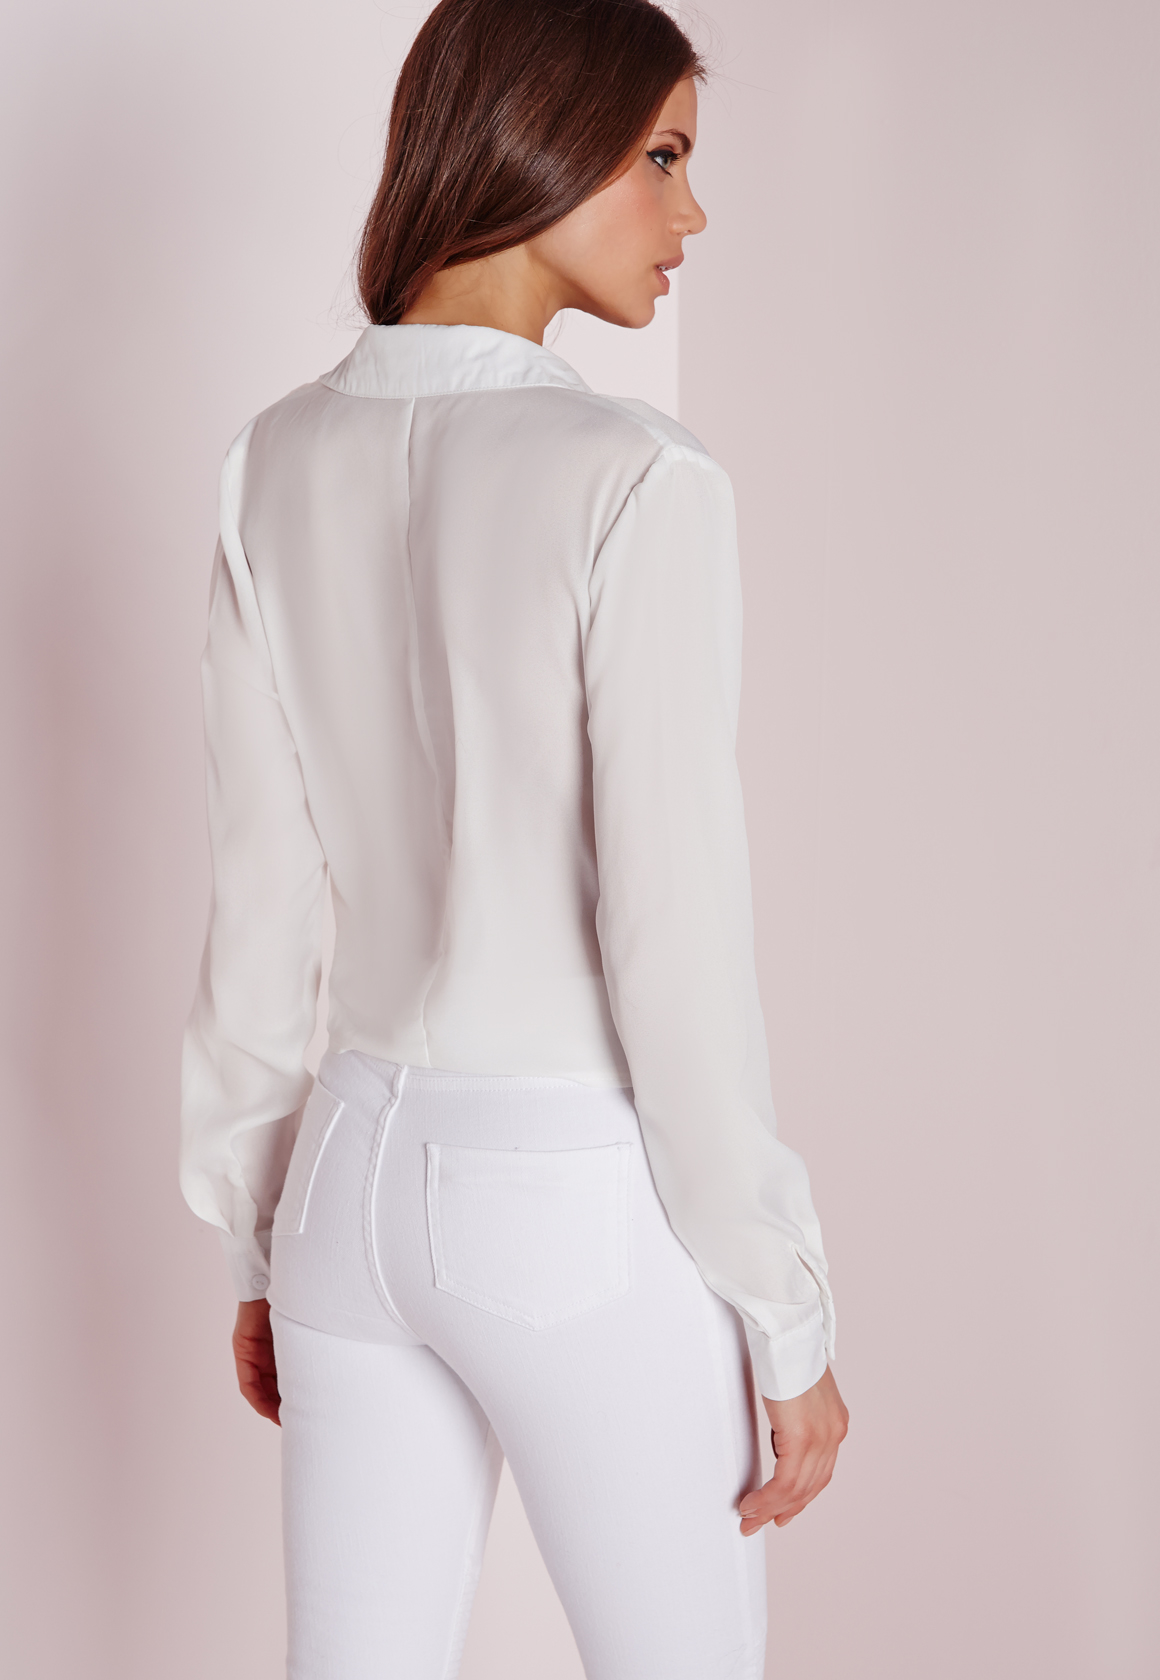 White Side Tie Blouse 21